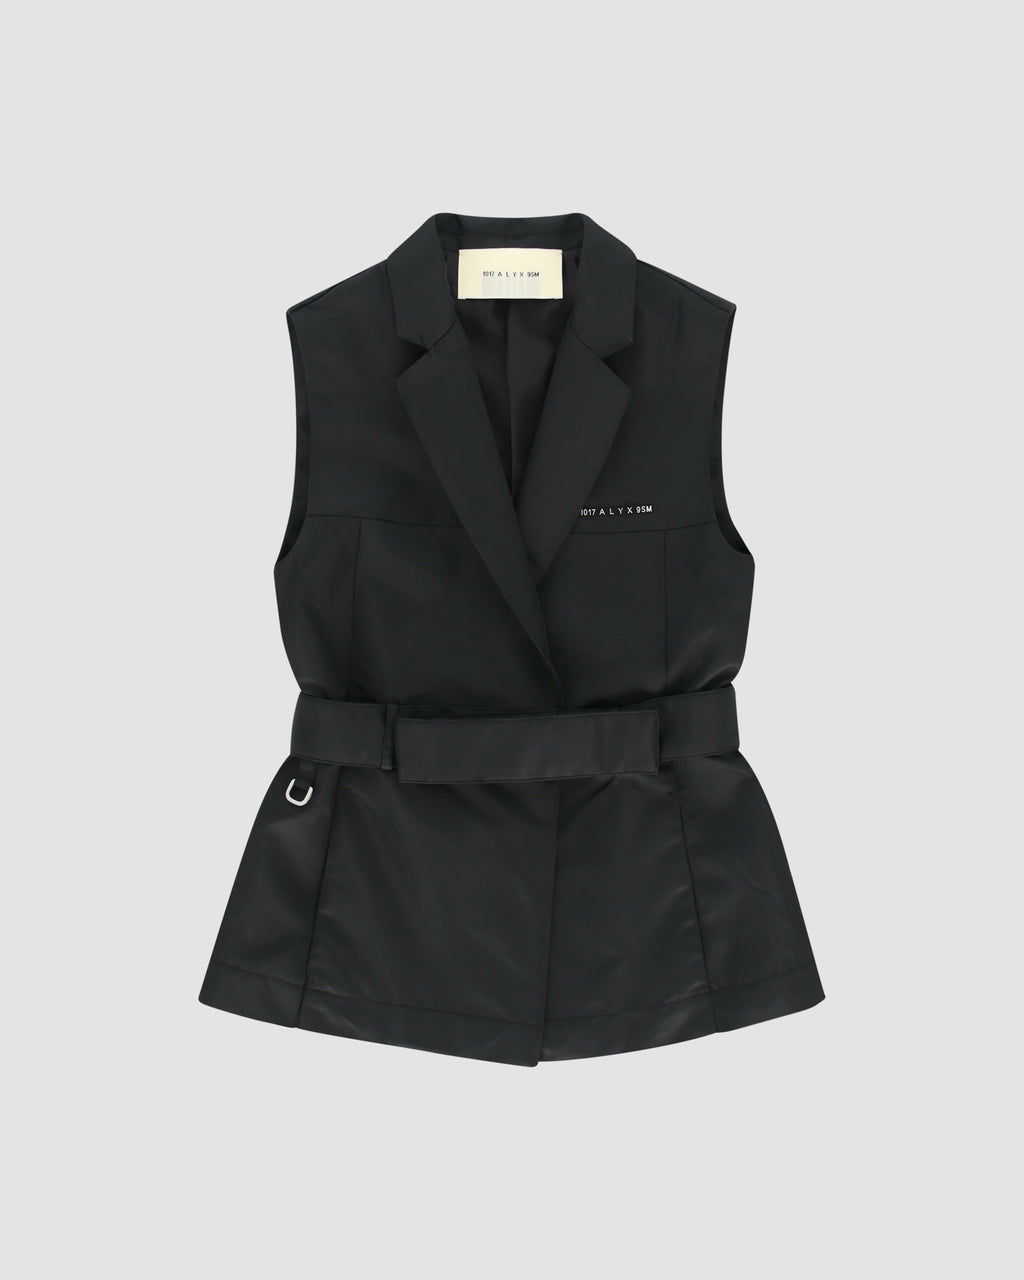 WOMENS TAILORING VEST - 1